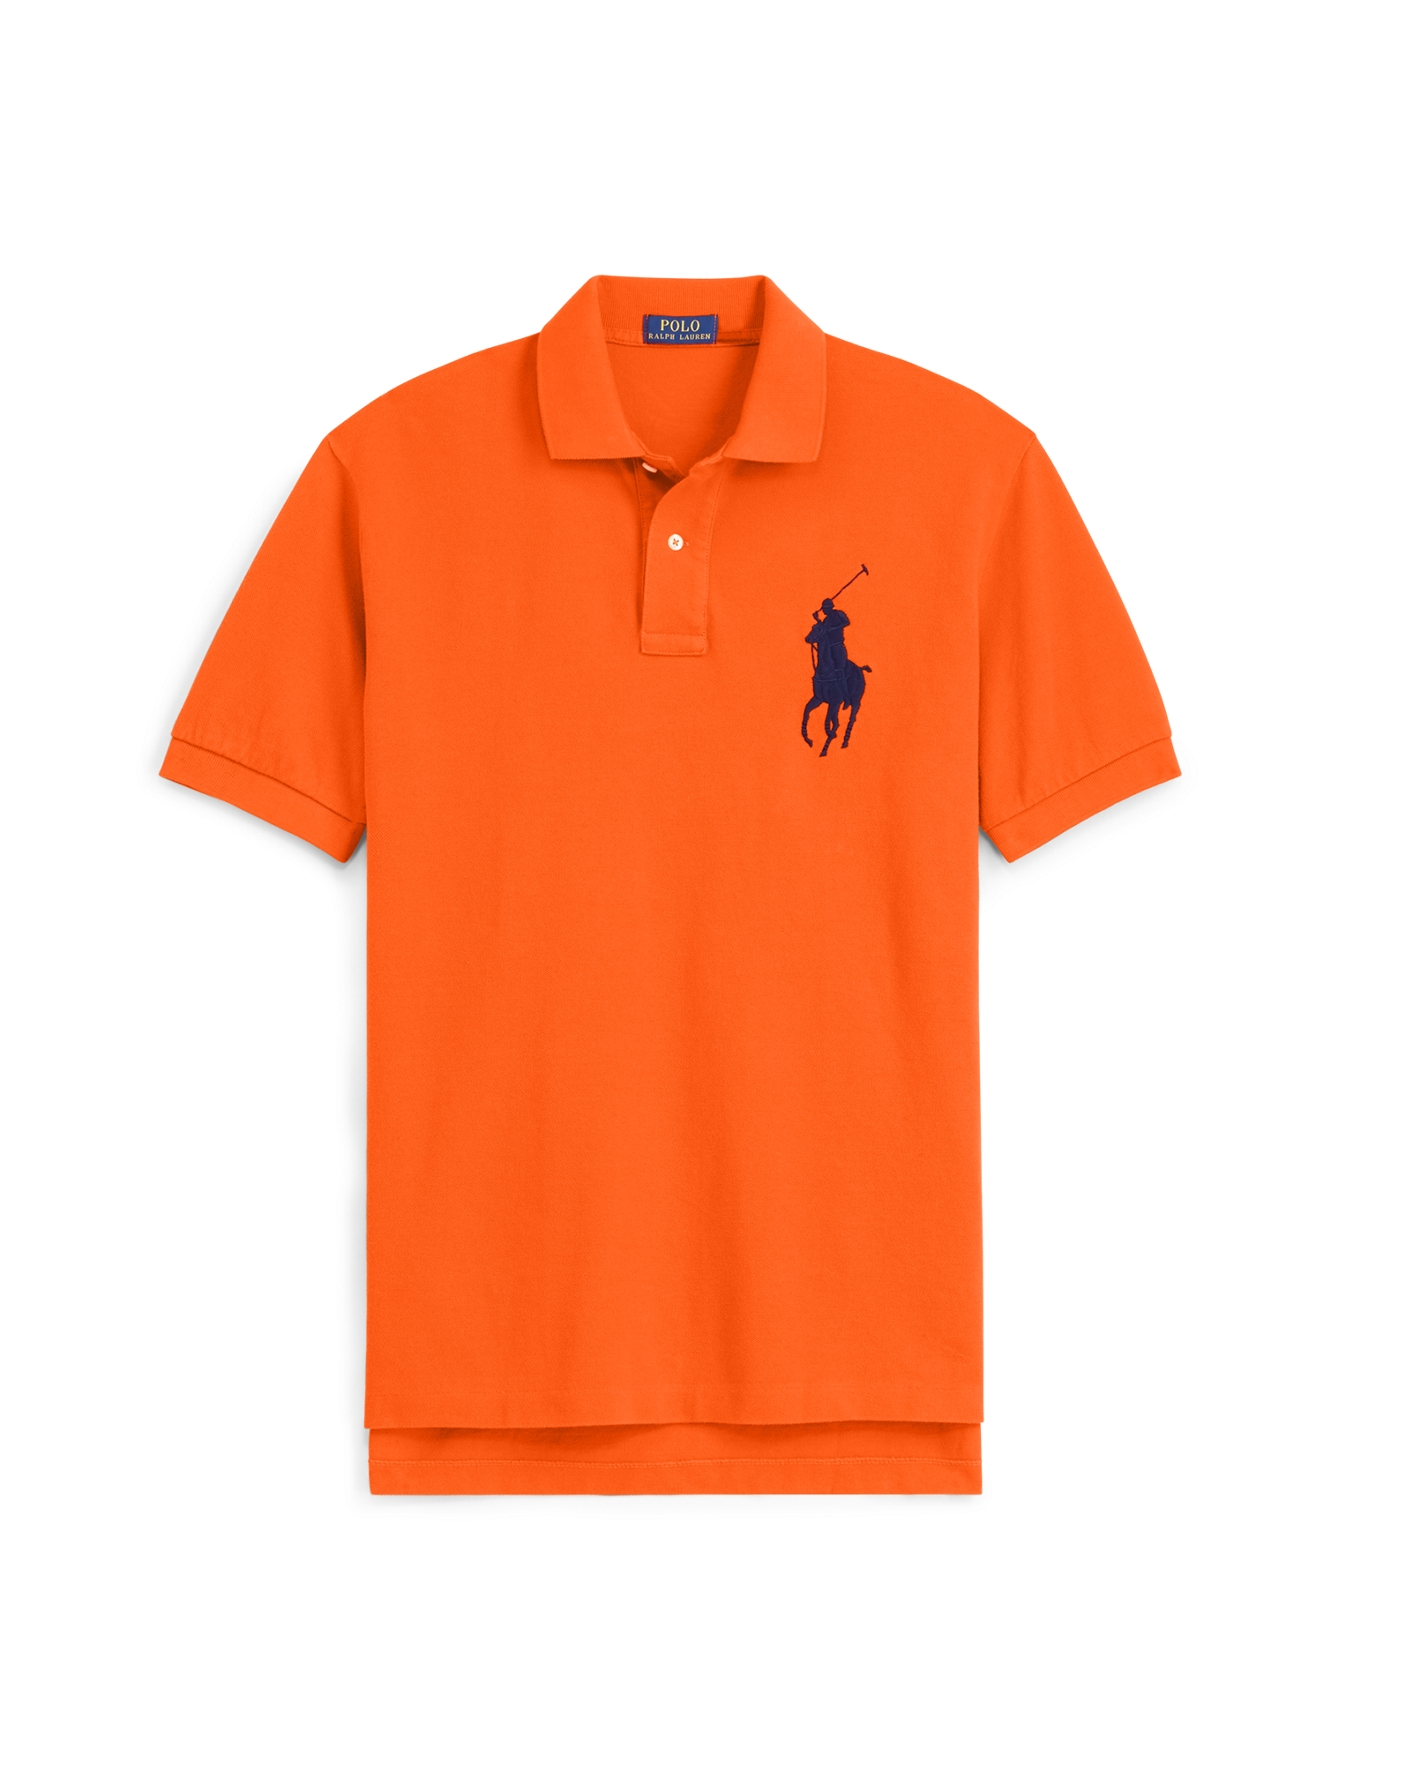 Polo Ralph Lauren. Shop Polo Ralph Lauren at Belk for all of your clothing needs, including classic button-down shirts, straight-fit pants, cozy pajamas and more. Whether you're looking to dress up or go casual, the Polo Ralph Lauren brand has something for you.